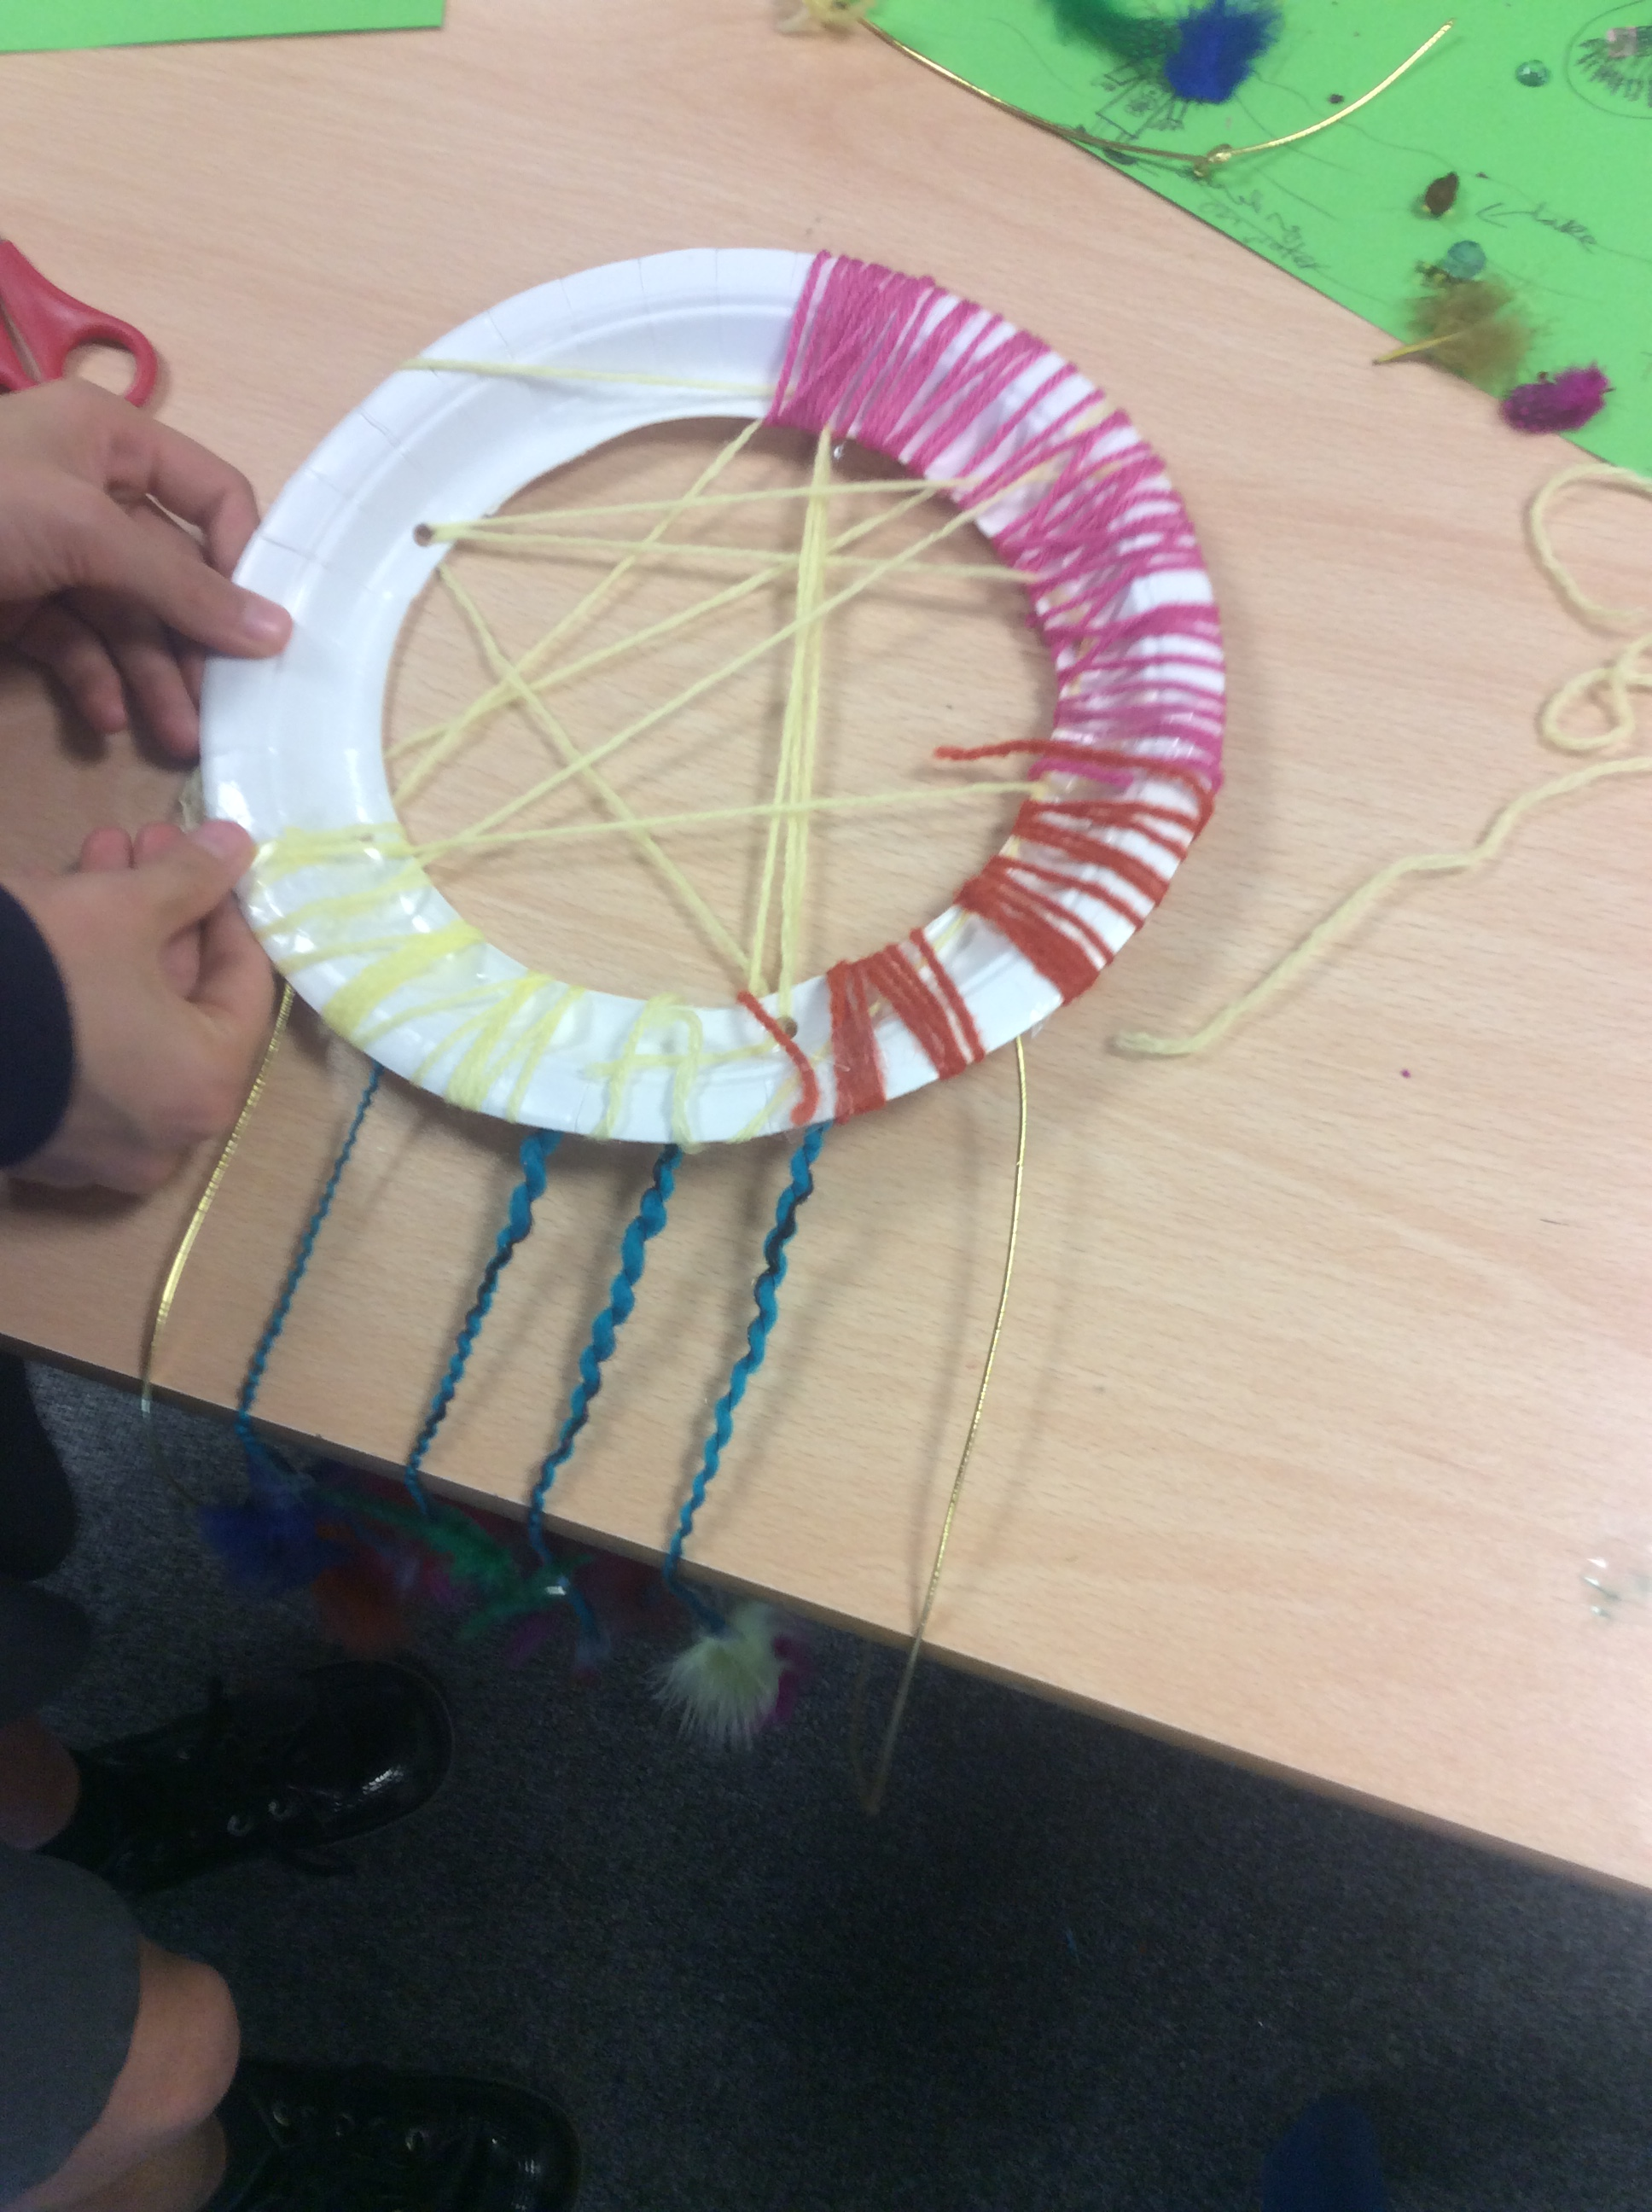 Who Created The Dream Catcher Creating A Dream Catcher St Annes Ancoats 15